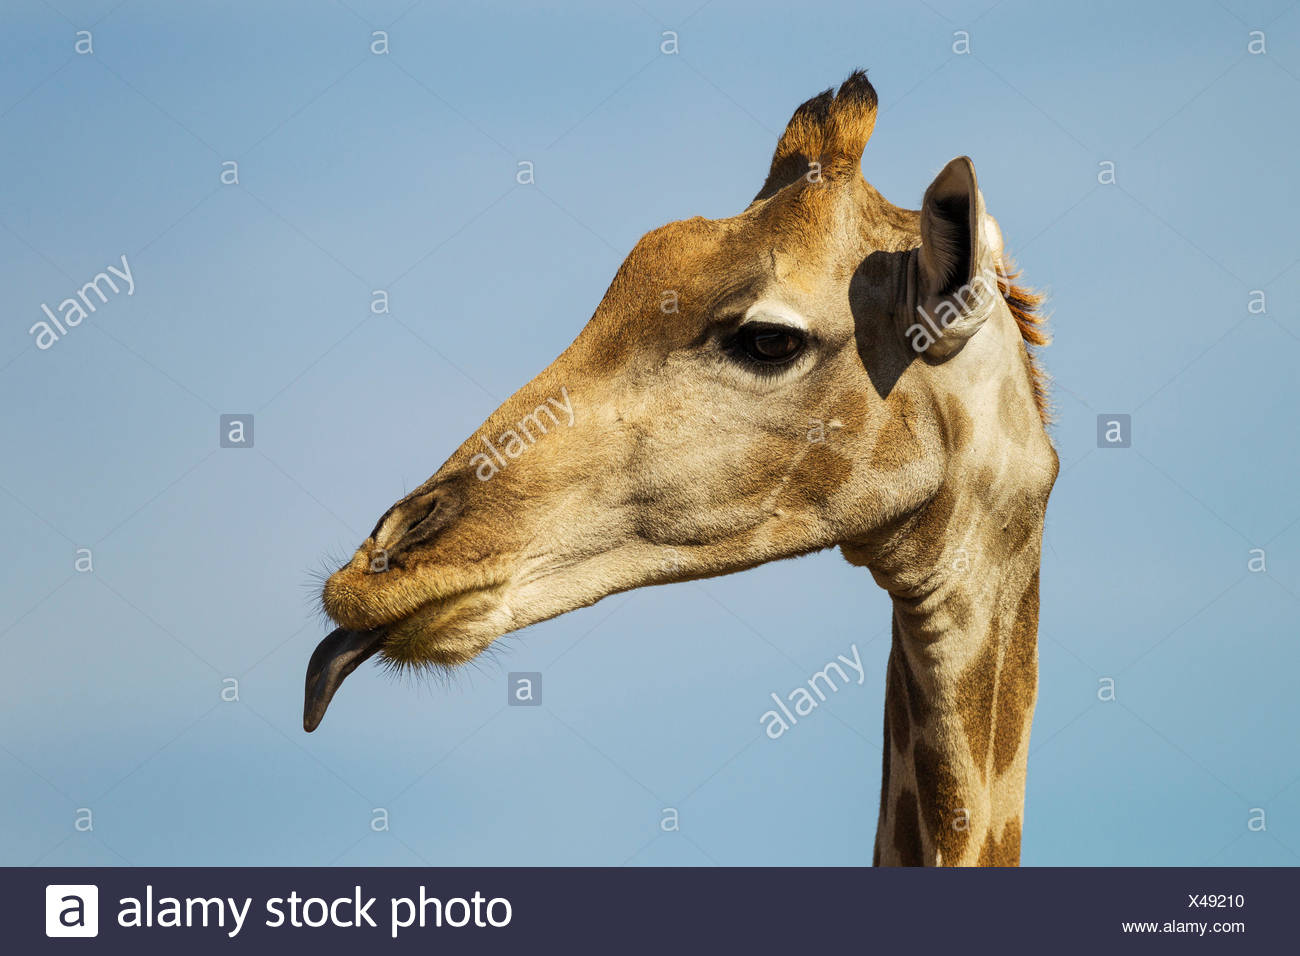 Southern Giraffe (Giraffa giraffa) female sticking out its tongue - Stock Image